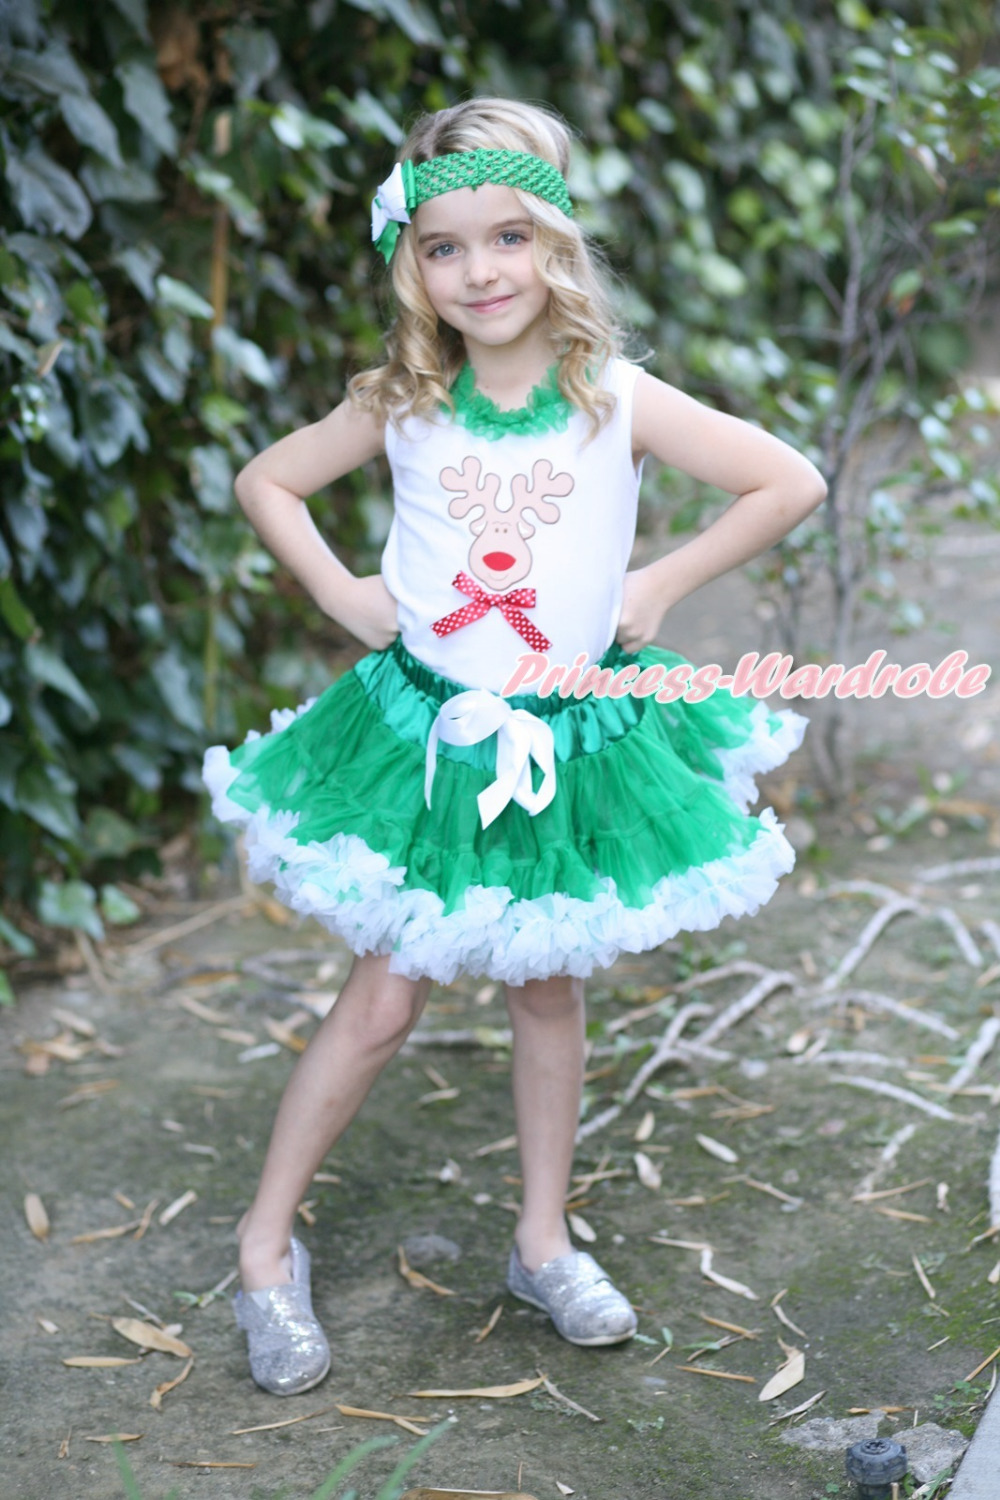 White Tank Top, Kelly Green Chiffon Lacing & Christmas Reindeer Print, Minnie Dots Bow With Kelly Green White Pettiskirt MAMG863 christmas hat reindeer white top minnie dots petal pettiskirt girls outfit nb 8y